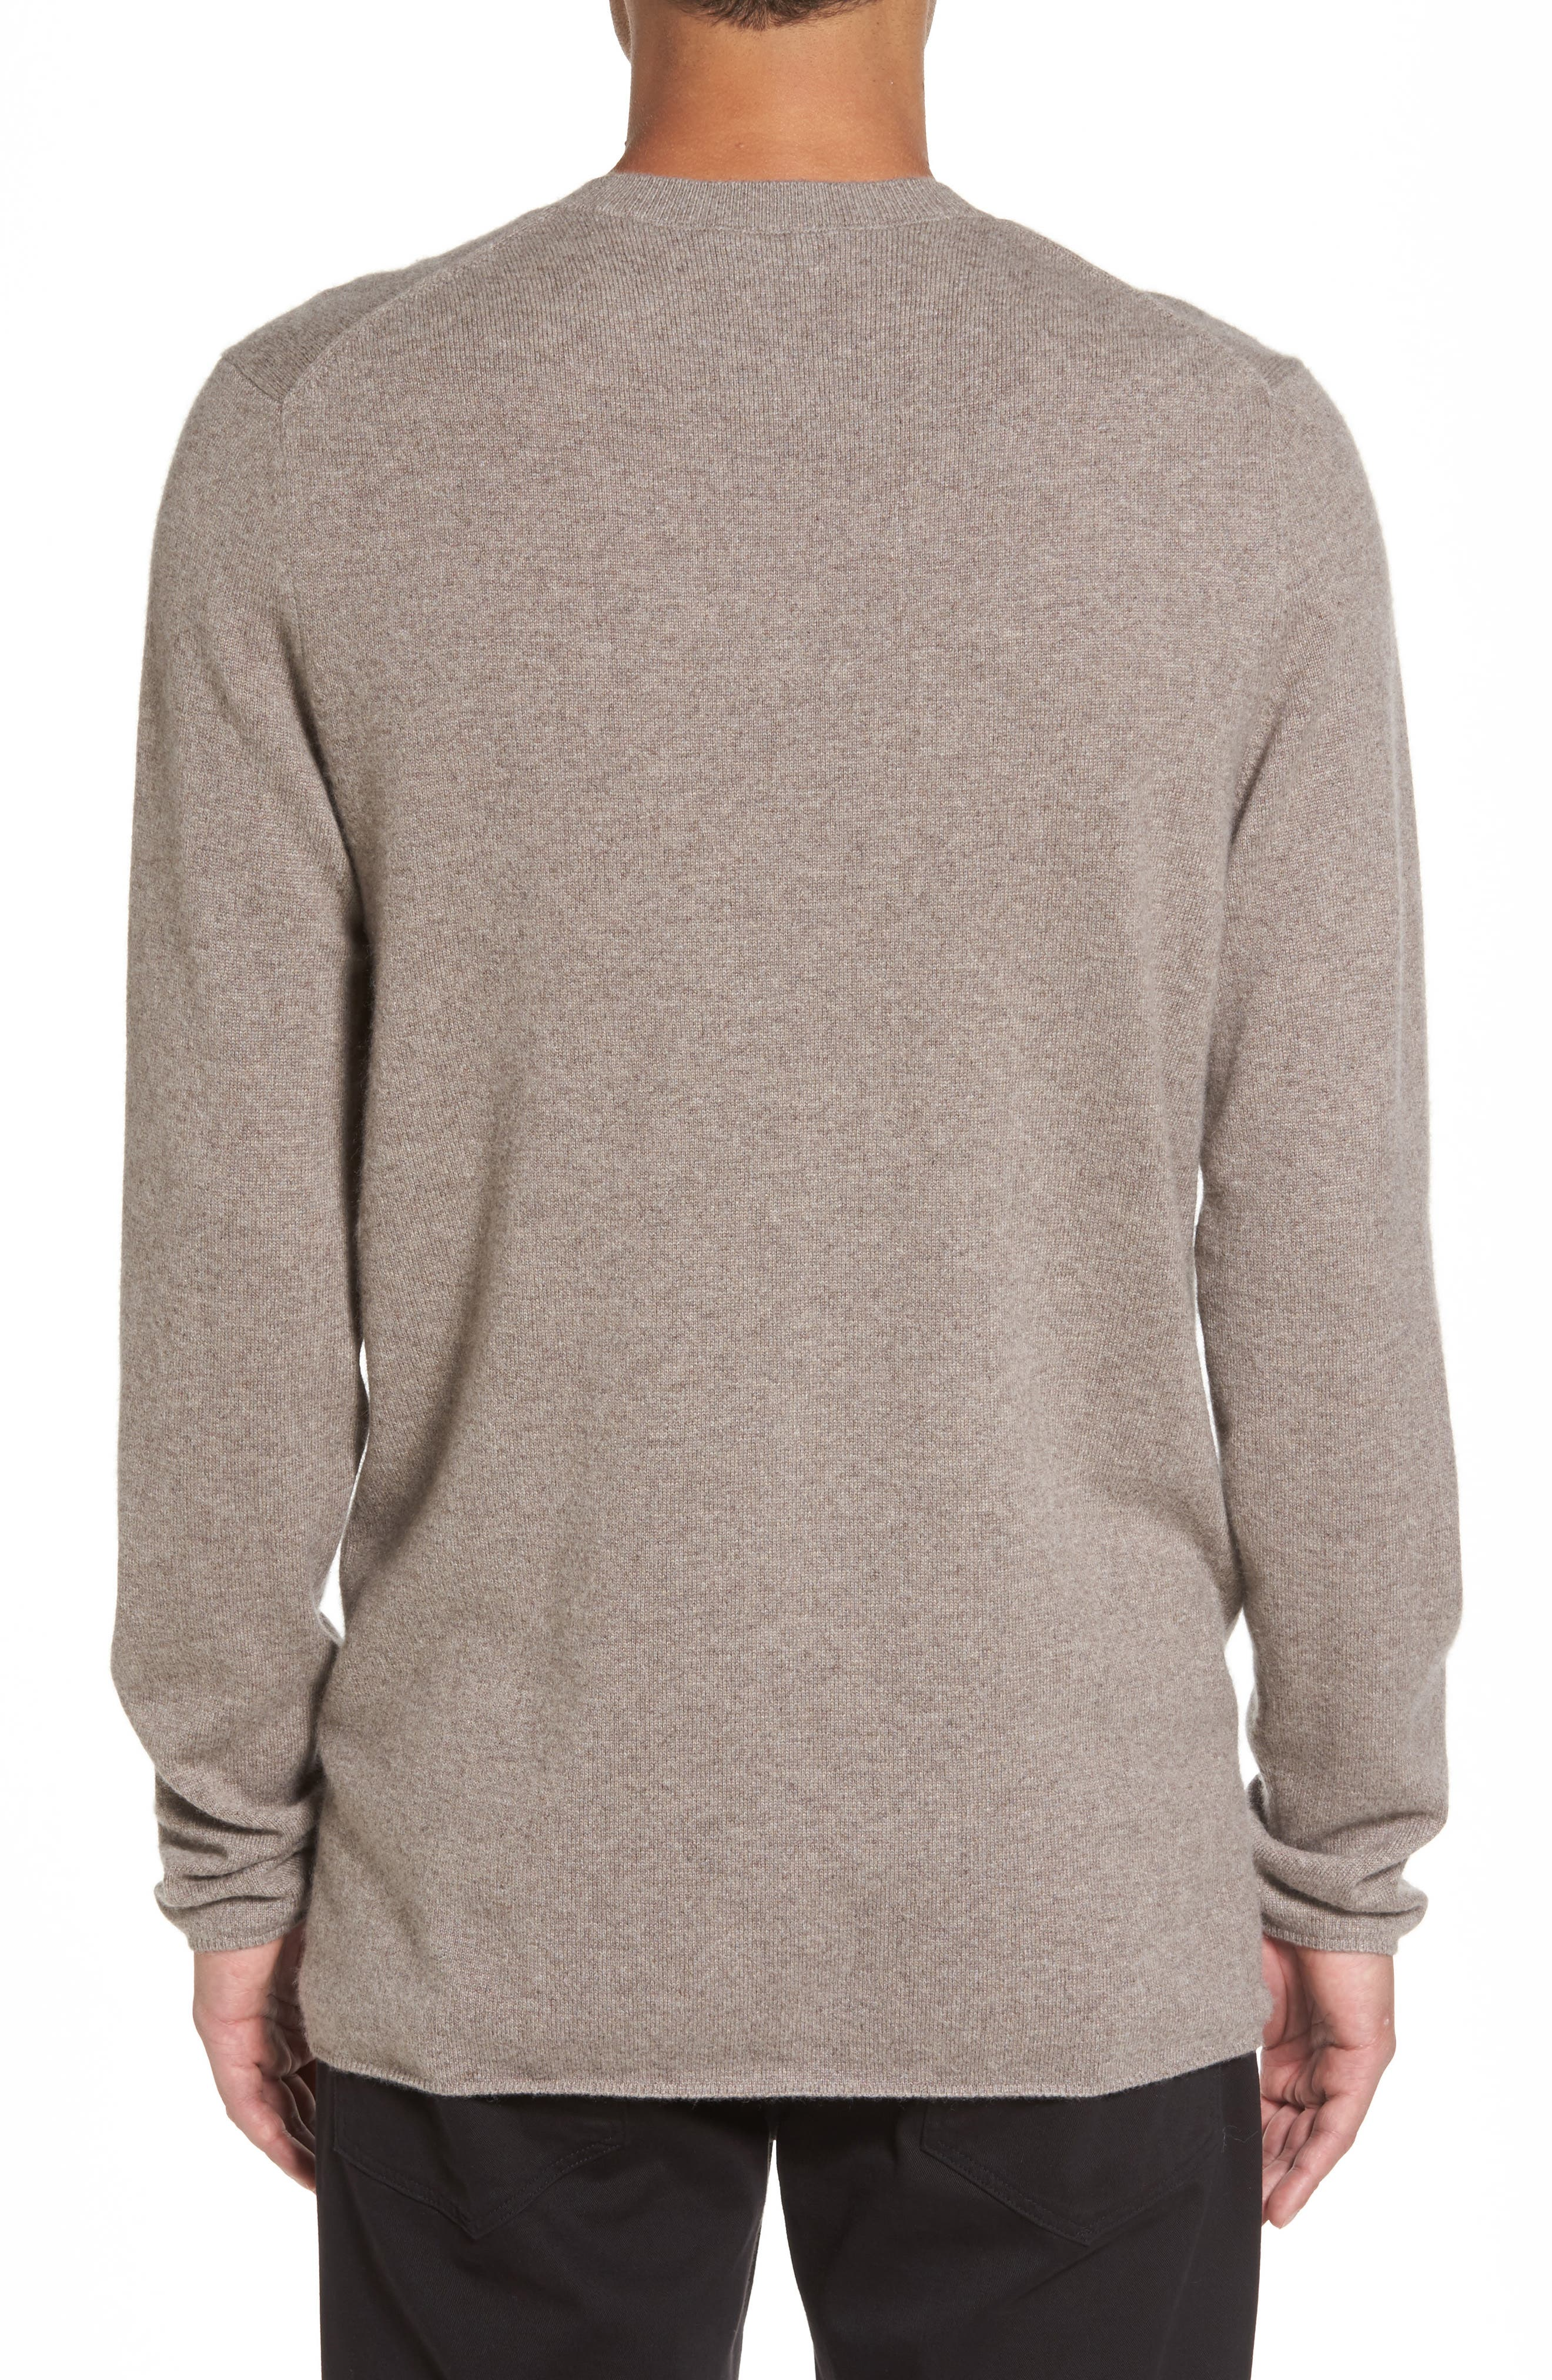 Regular Fit Crewneck Sweater,                             Alternate thumbnail 2, color,                             281